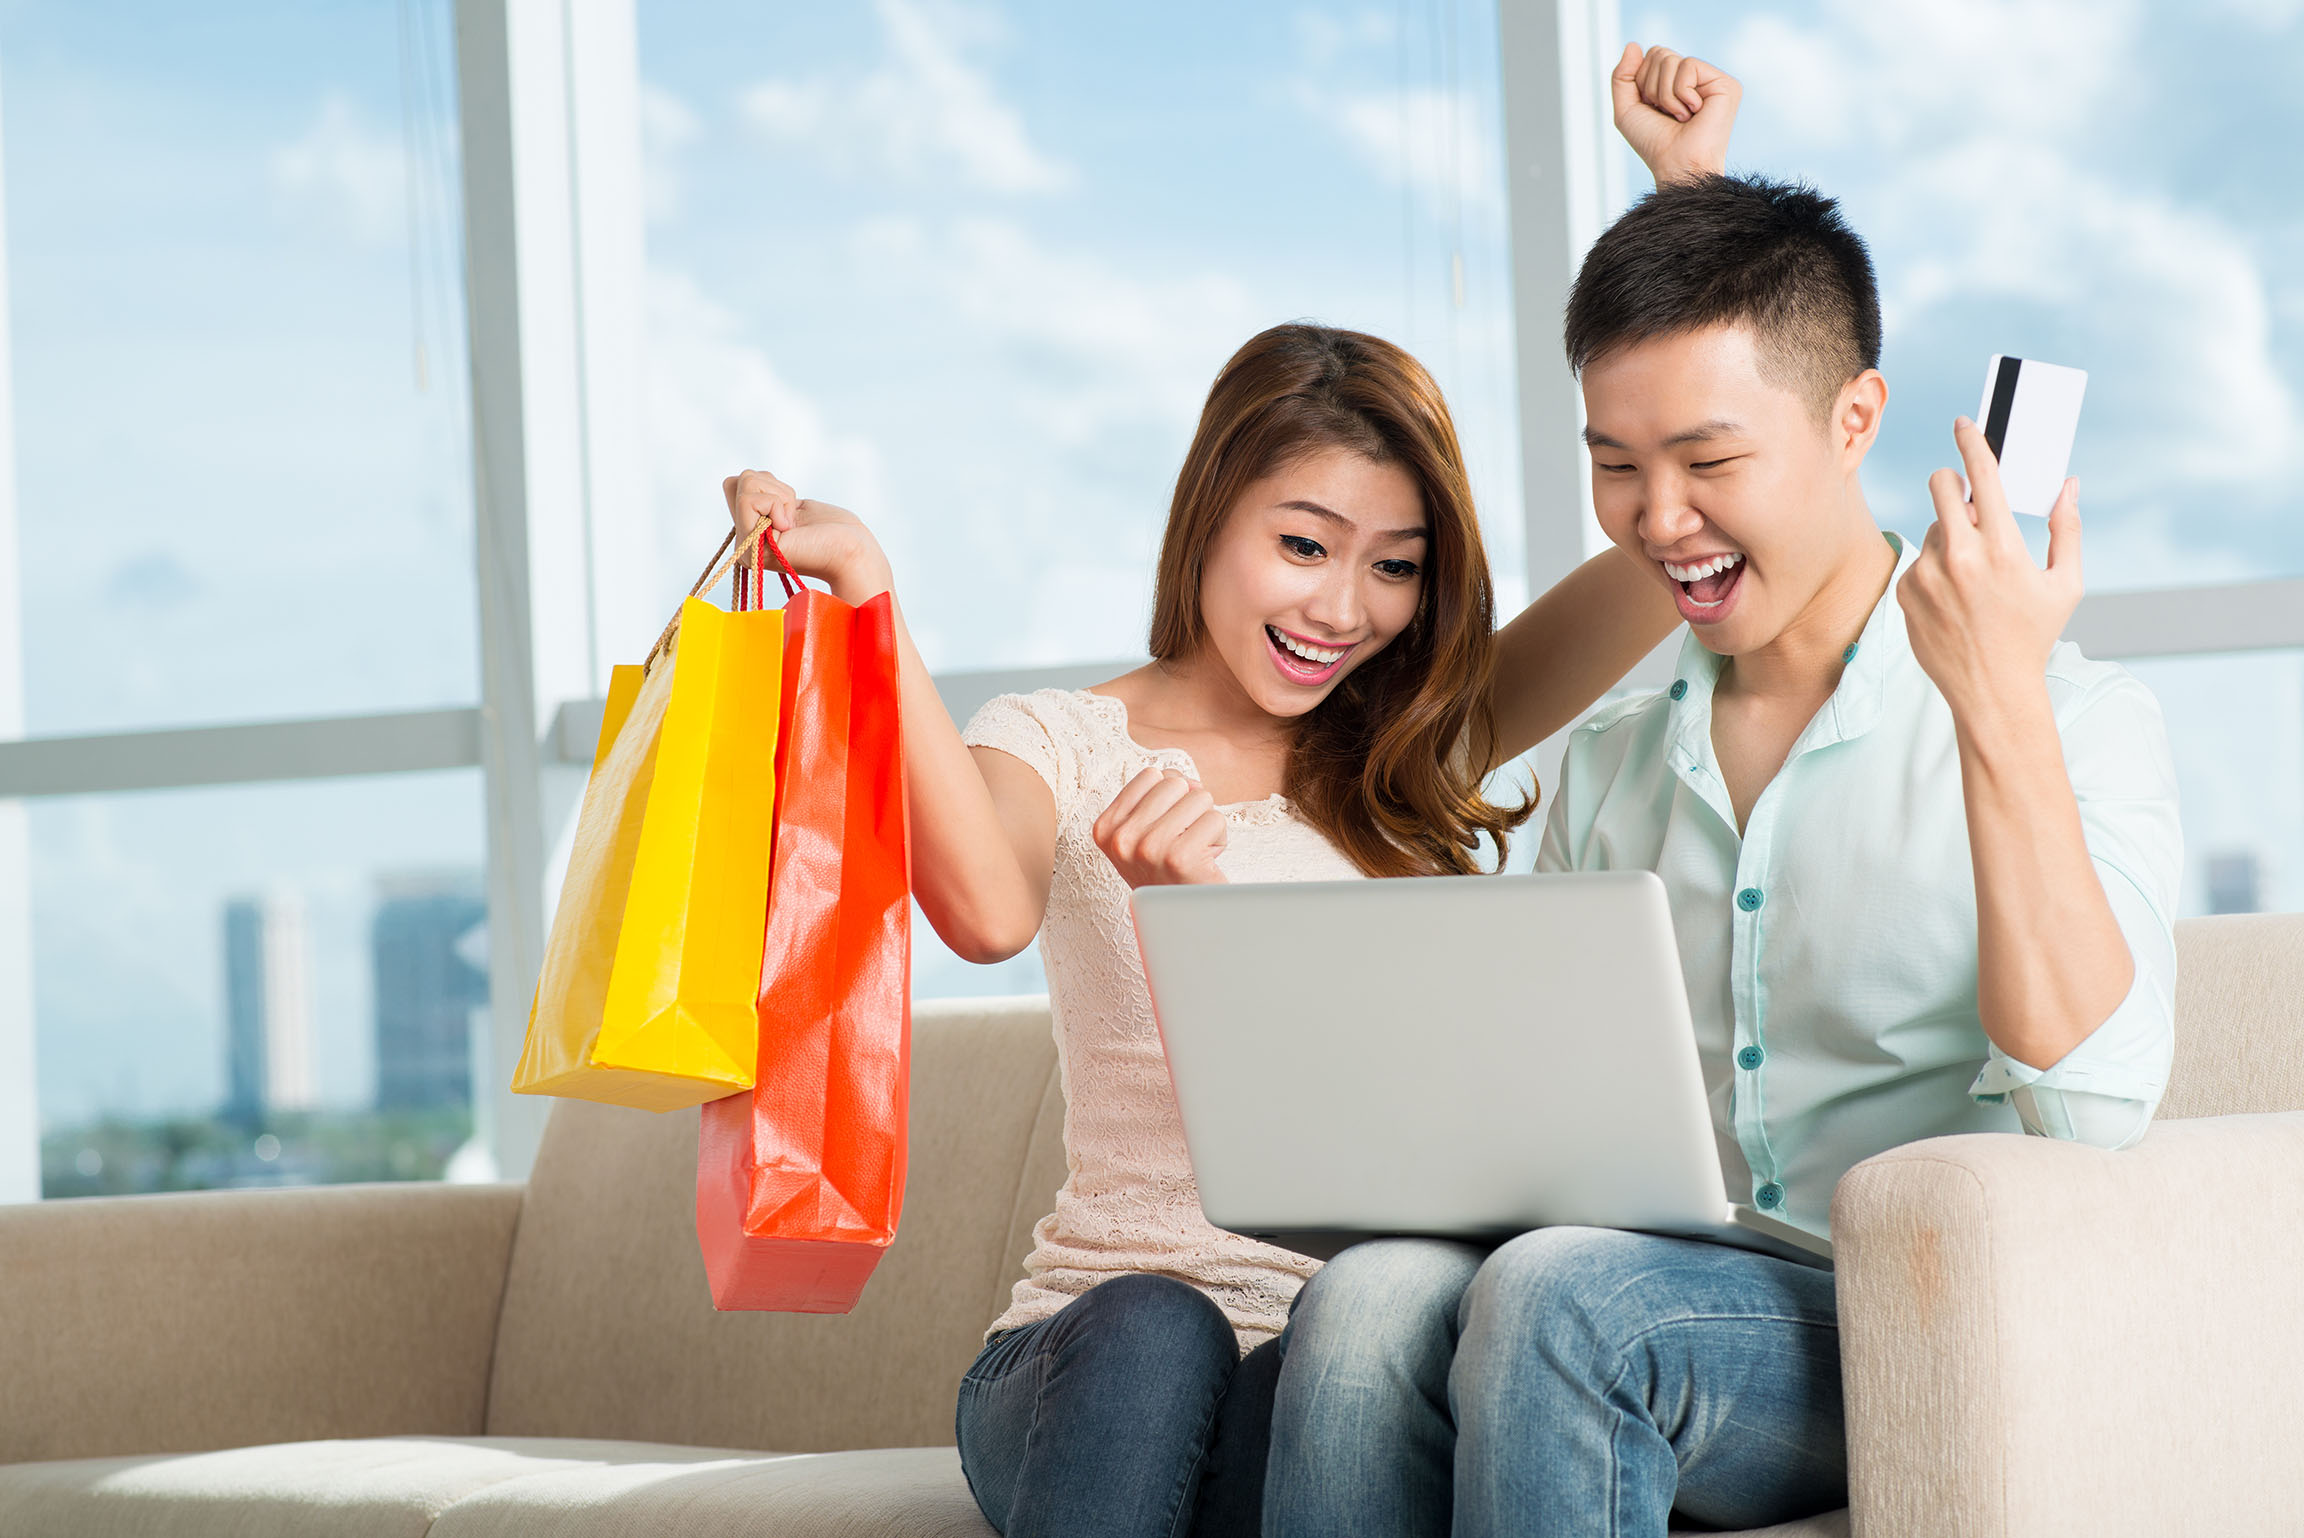 E-Commerce should reach 25% of Chinese population by 2020